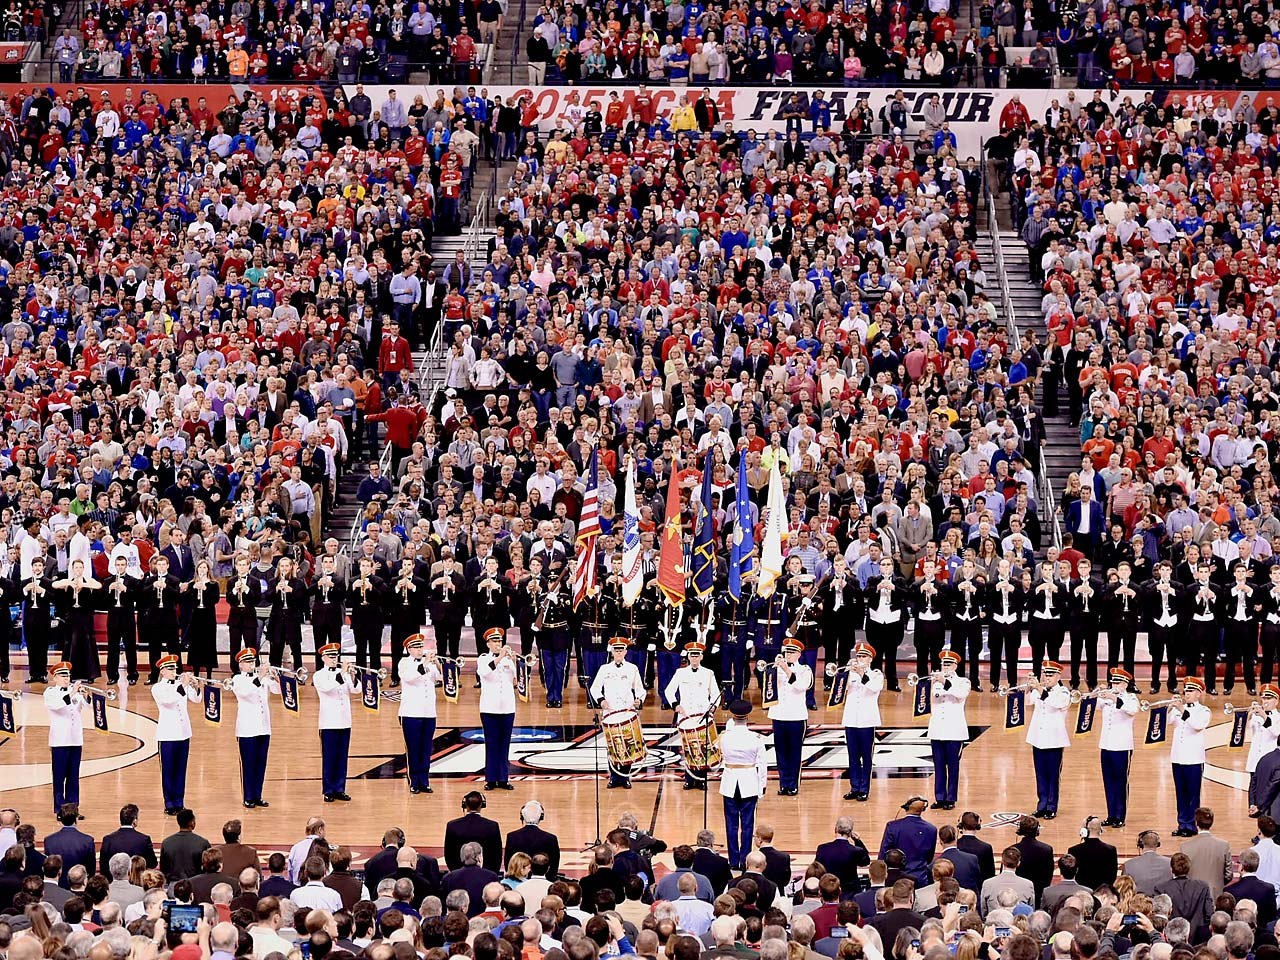 The U.S. Army band performs the Star Spangled Banner before Wisconsin and Duke's national title game matchup.